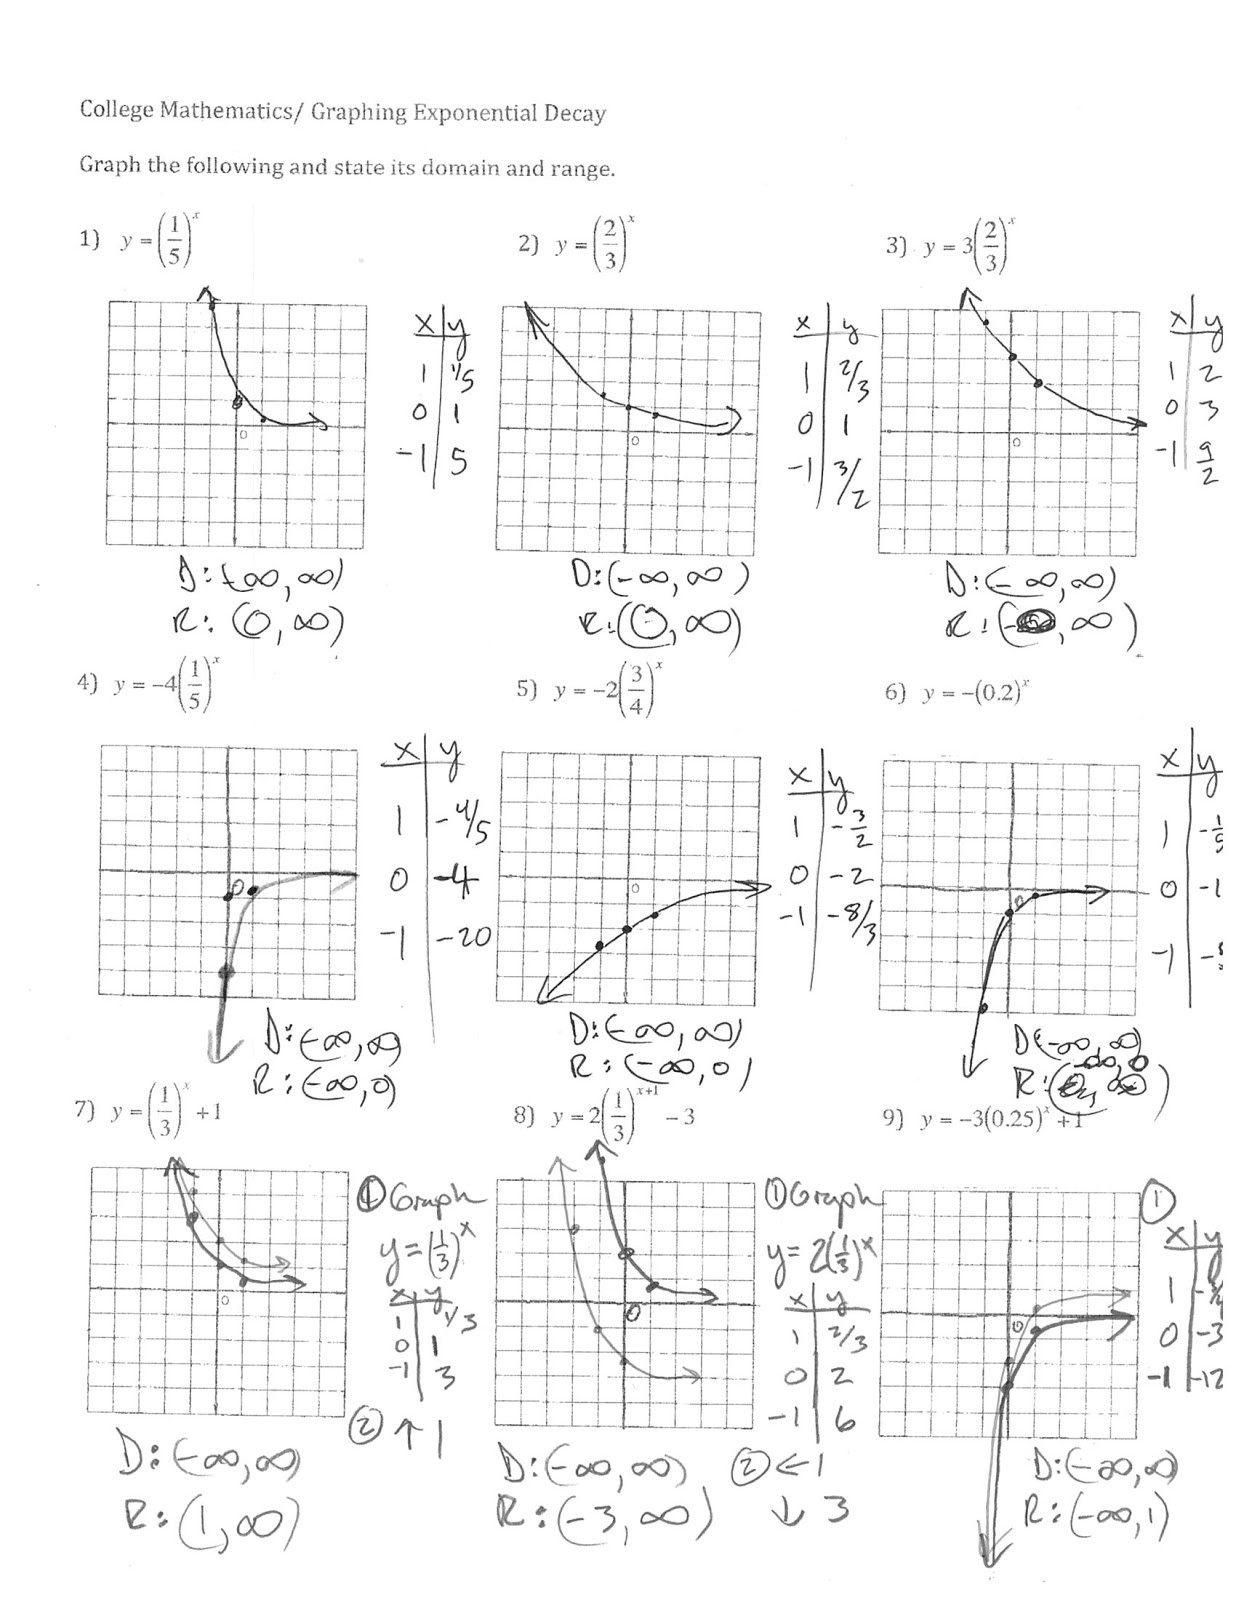 Coordinate Plane Worksheets 5th Grade Graphing Drawing at Getdrawings Free Coordinate Plane